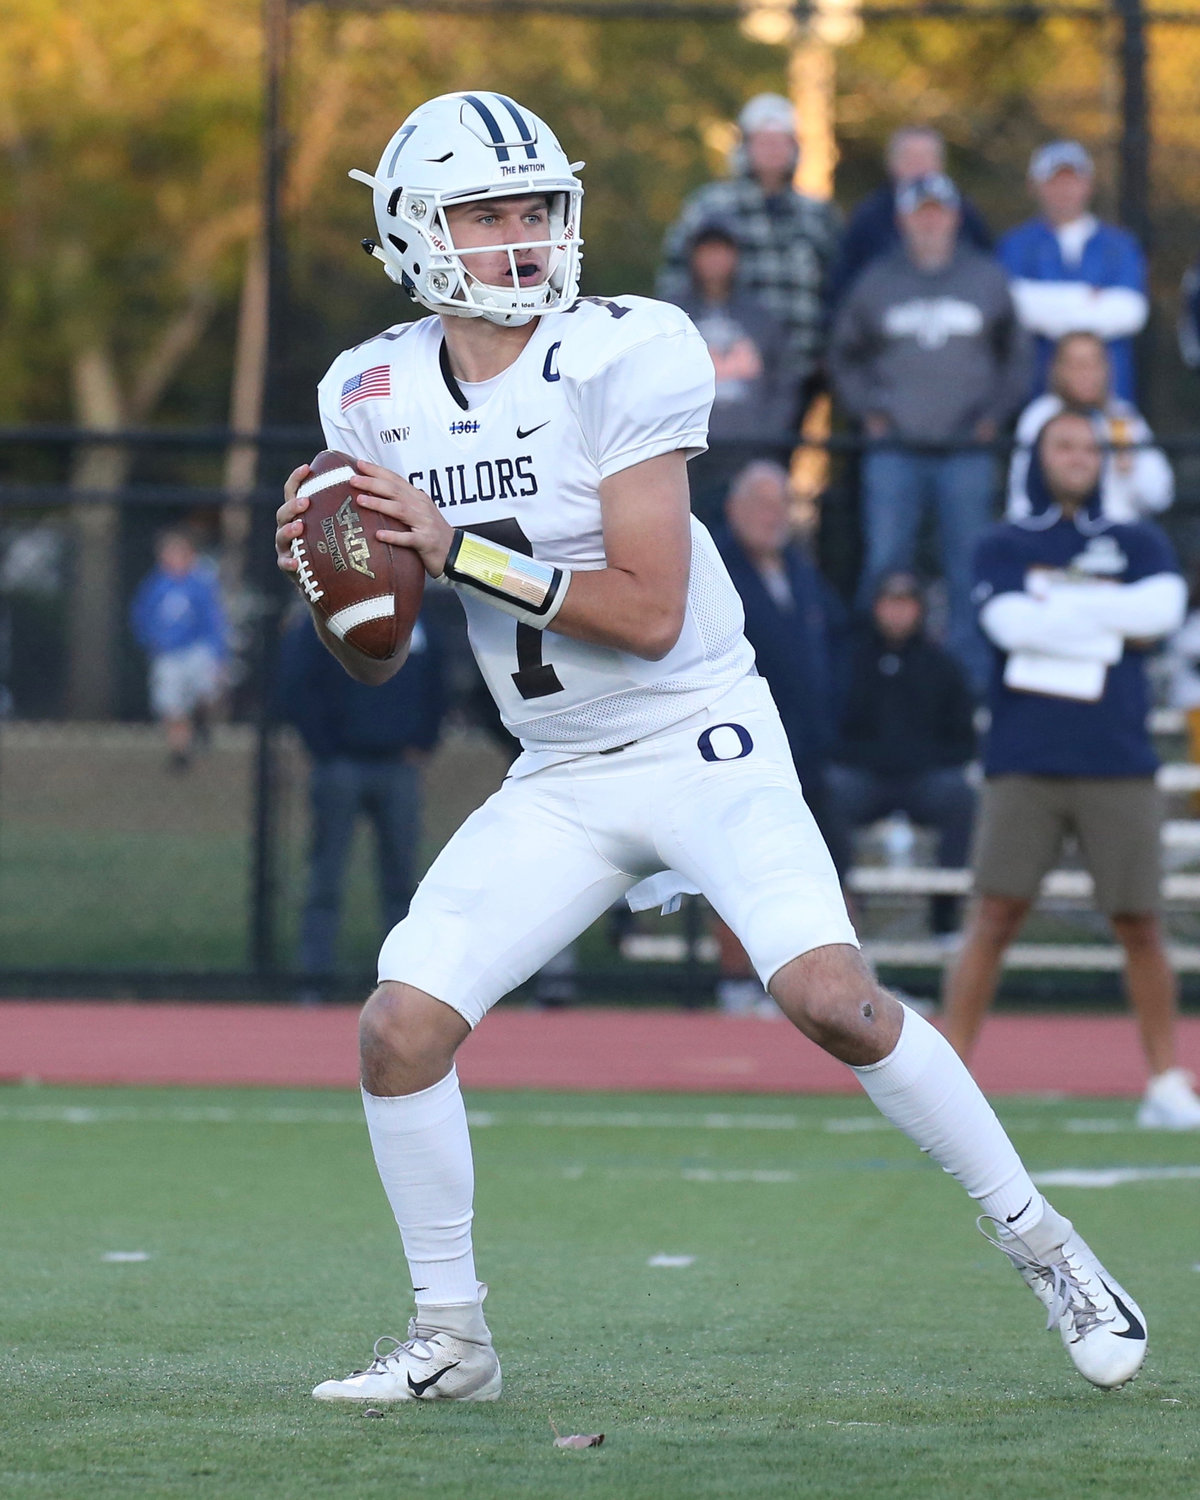 Oceanside quarterback Charlie McKee, a rising junior, has thrown for more than 5,000 yards and 50 touchdowns over his first two varsity seasons.